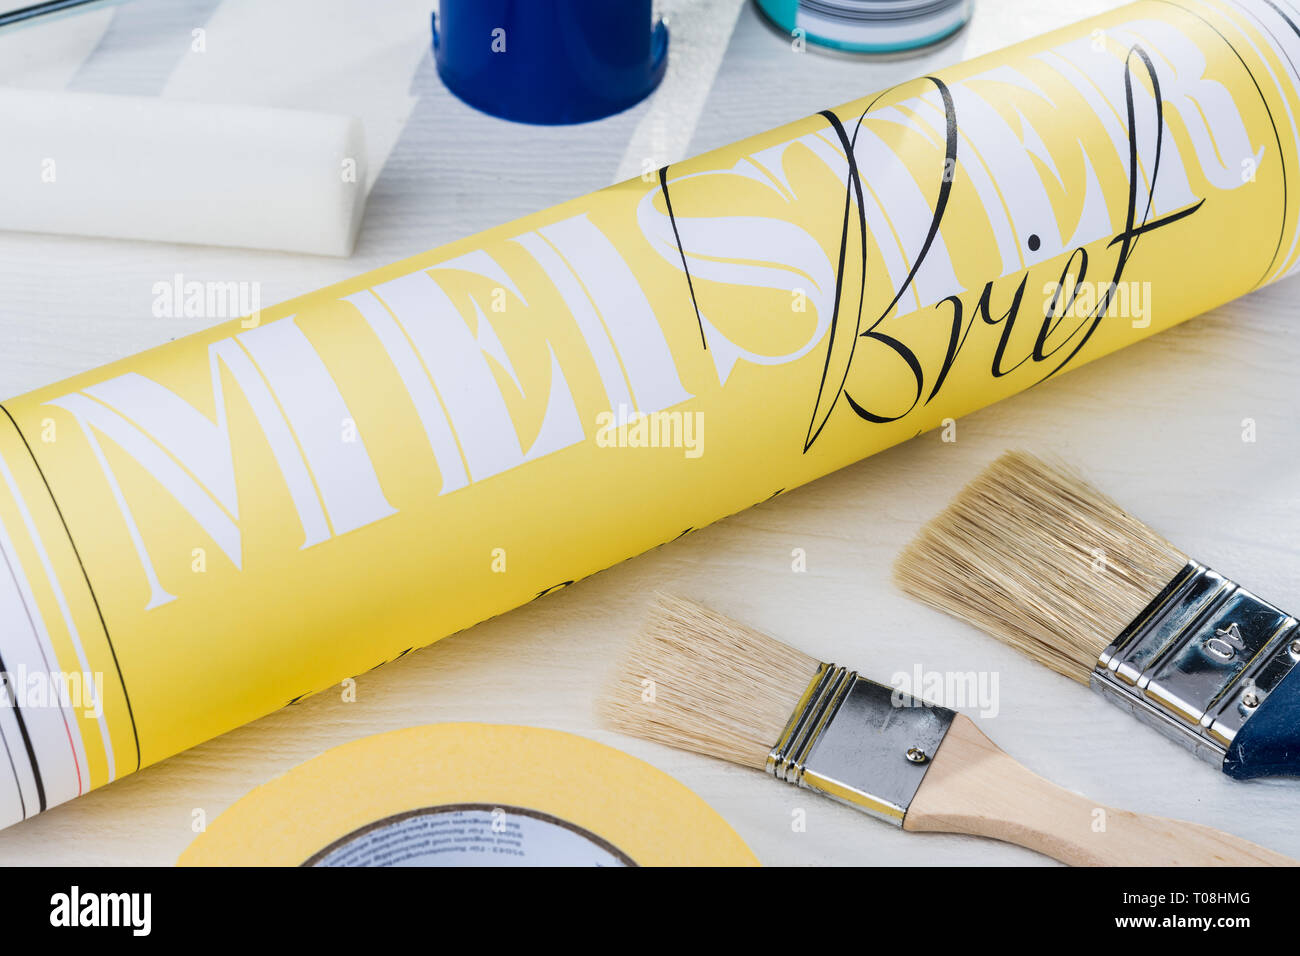 master craftsman's certificate on table with Painter, master painter, brush, paint roller, paint can, adhesive tape, paint, paintbrush, Stock Photo